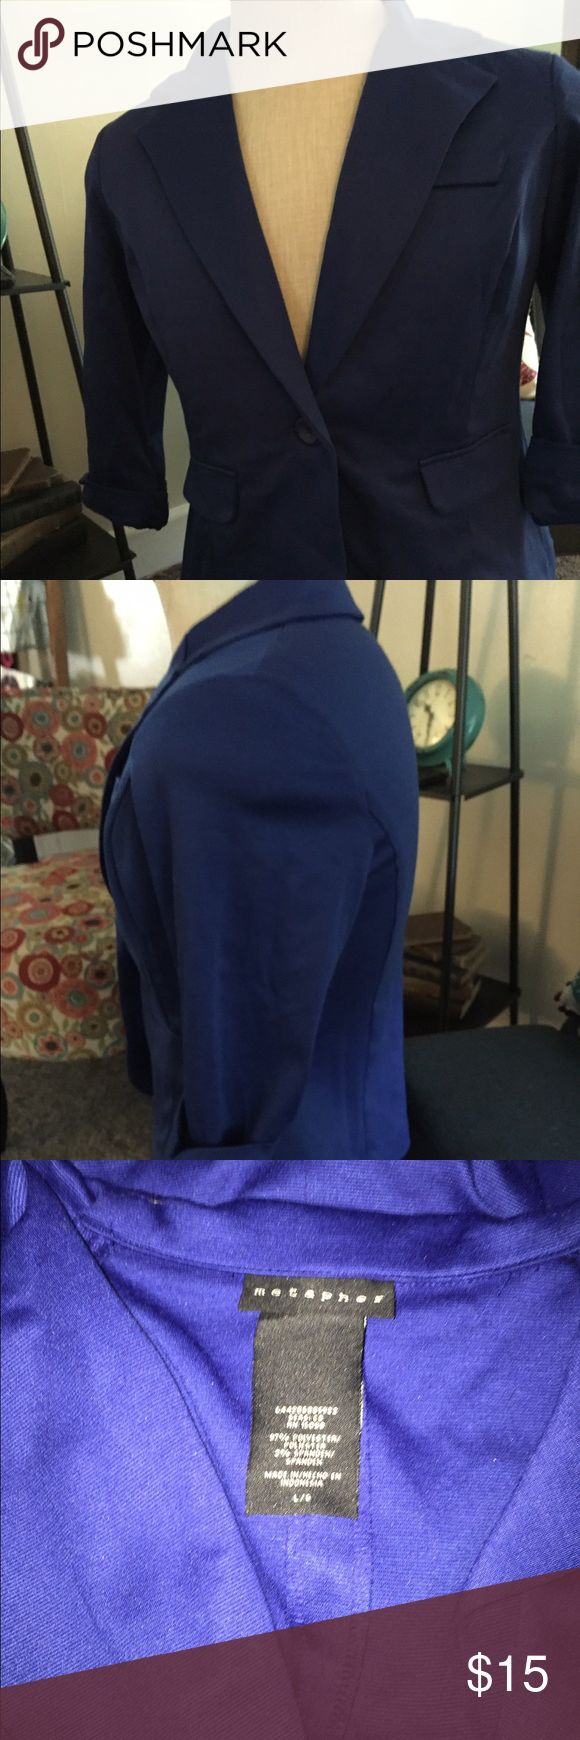 Royal blue blazer in like new condition Beautiful like new blazer in a gorgeous royal blue. Worn only once and in excellent used condition. Metaphor Jackets & Coats Blazers